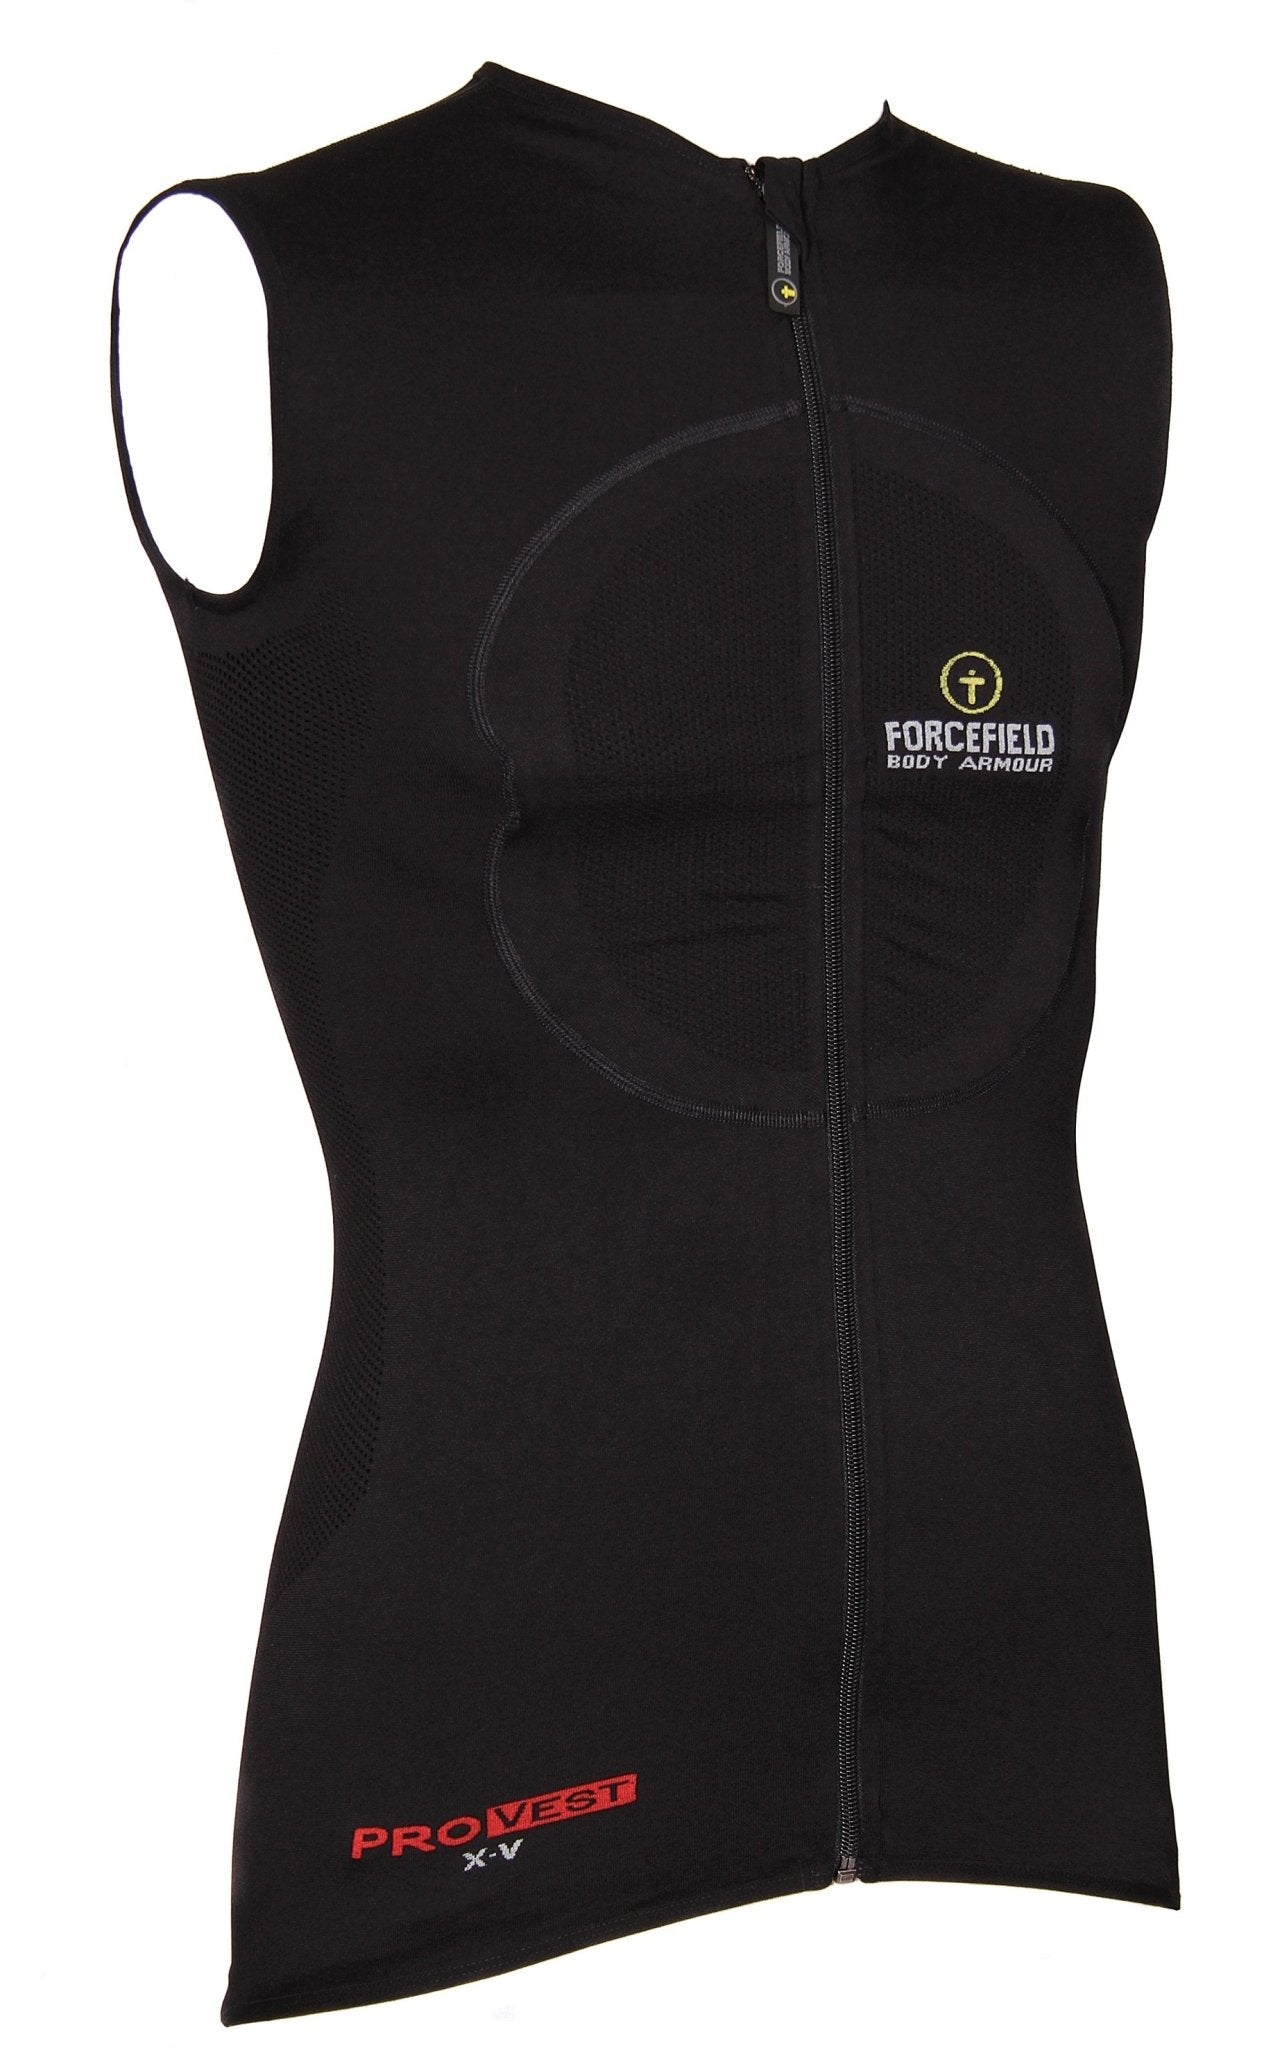 Forcefield-Forcefield Pro Vest X-V Without Armor - Action Athlete Supply